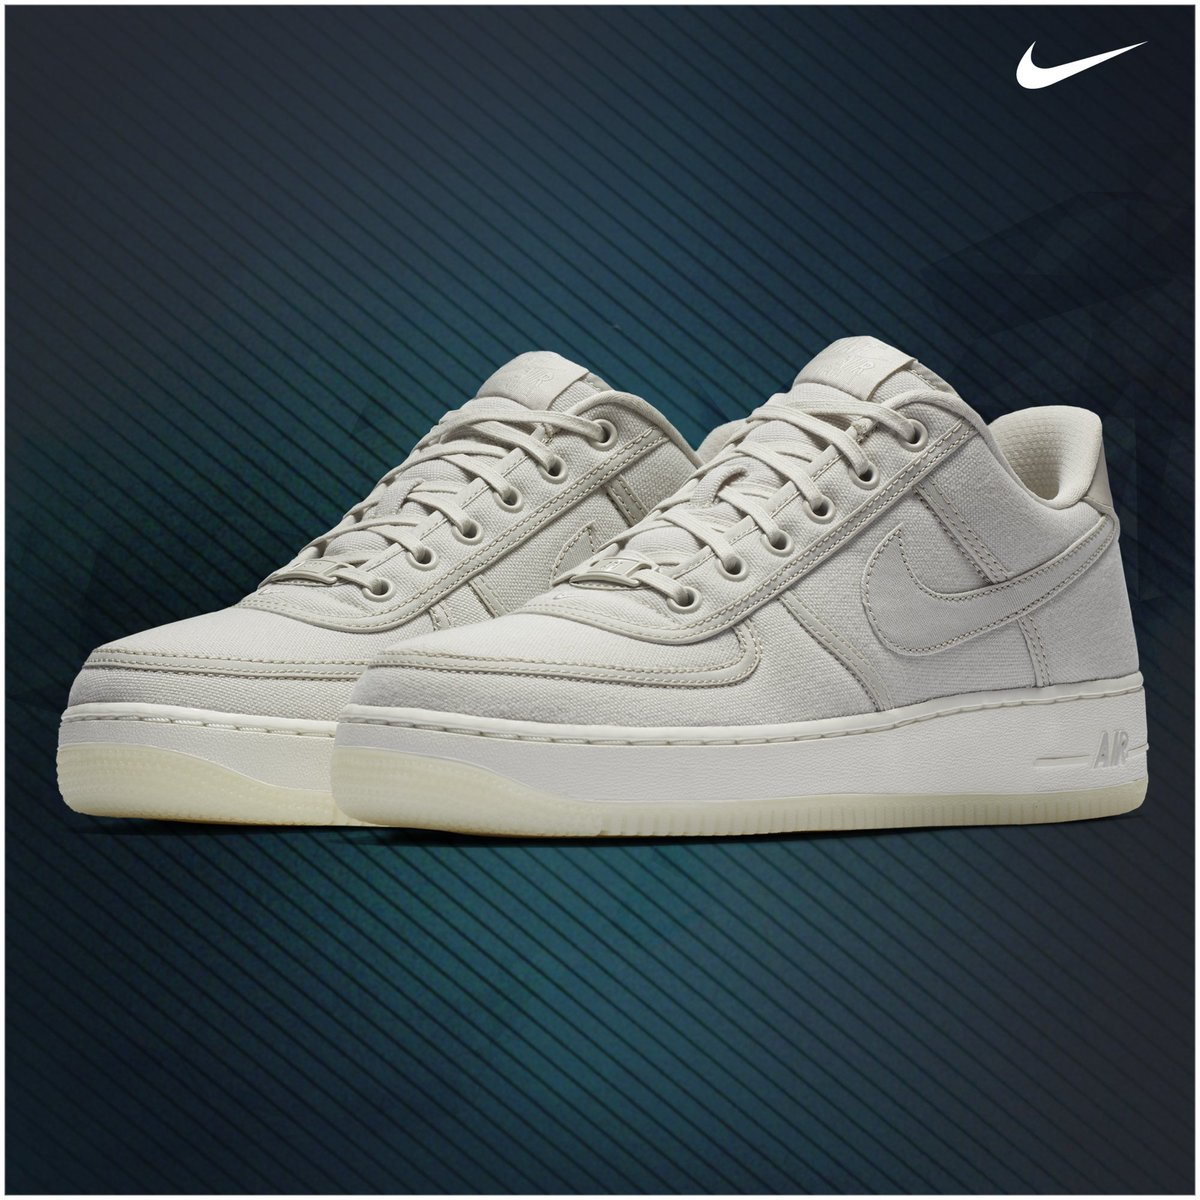 GB'S Sneaker Shop on Twitter: Nike Air Force 1 Low Retro